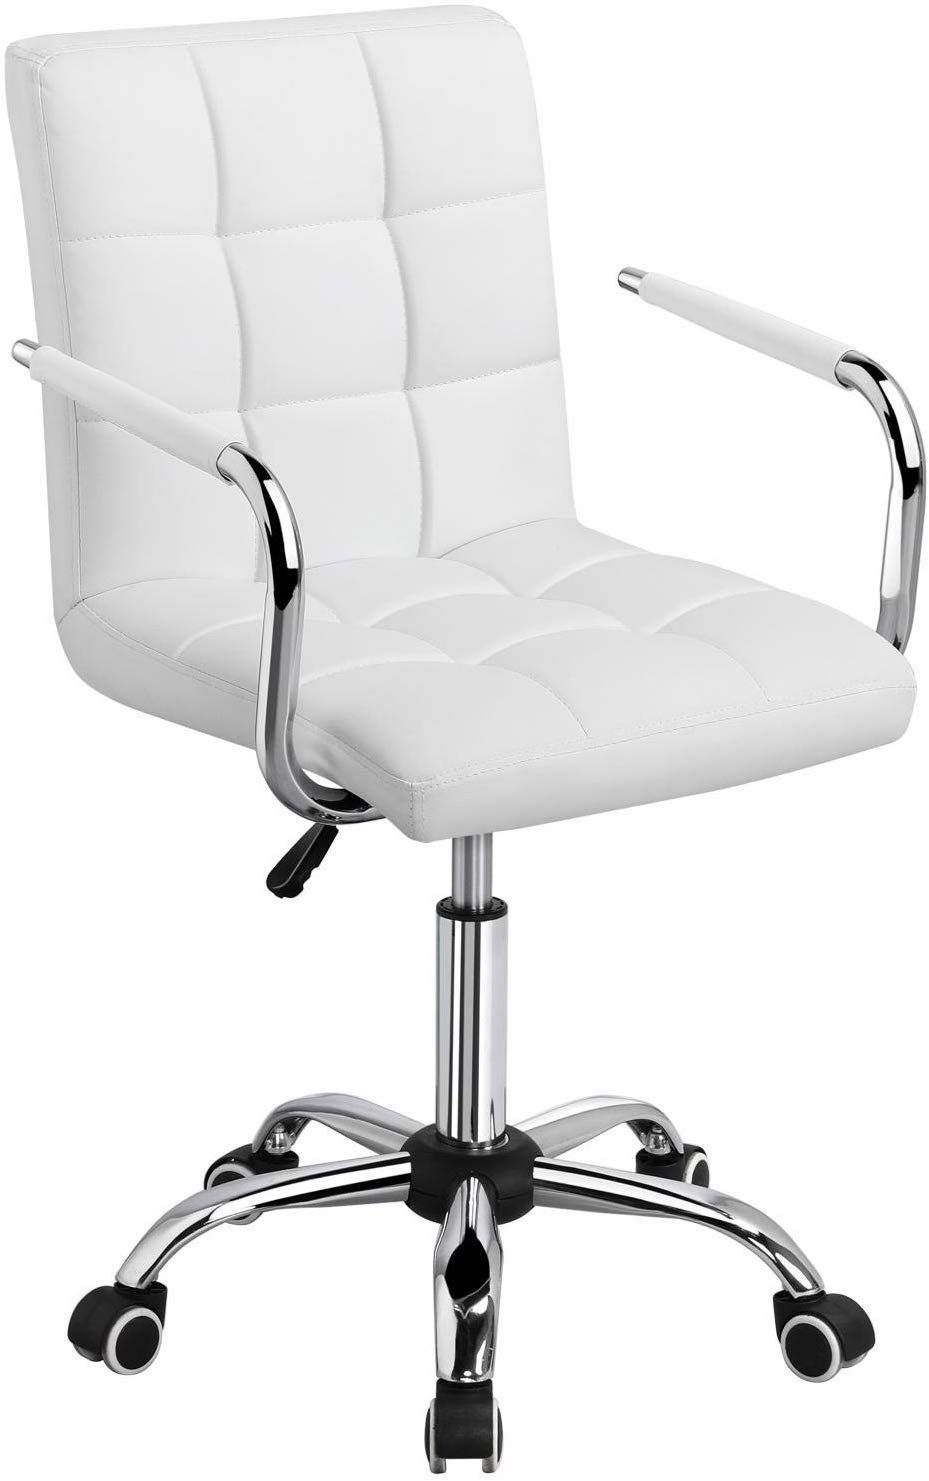 Pin By Alysha On Beauty Room Vlogging In 2020 White Desk Chair White Office Chair White Desk Chair No Wheels